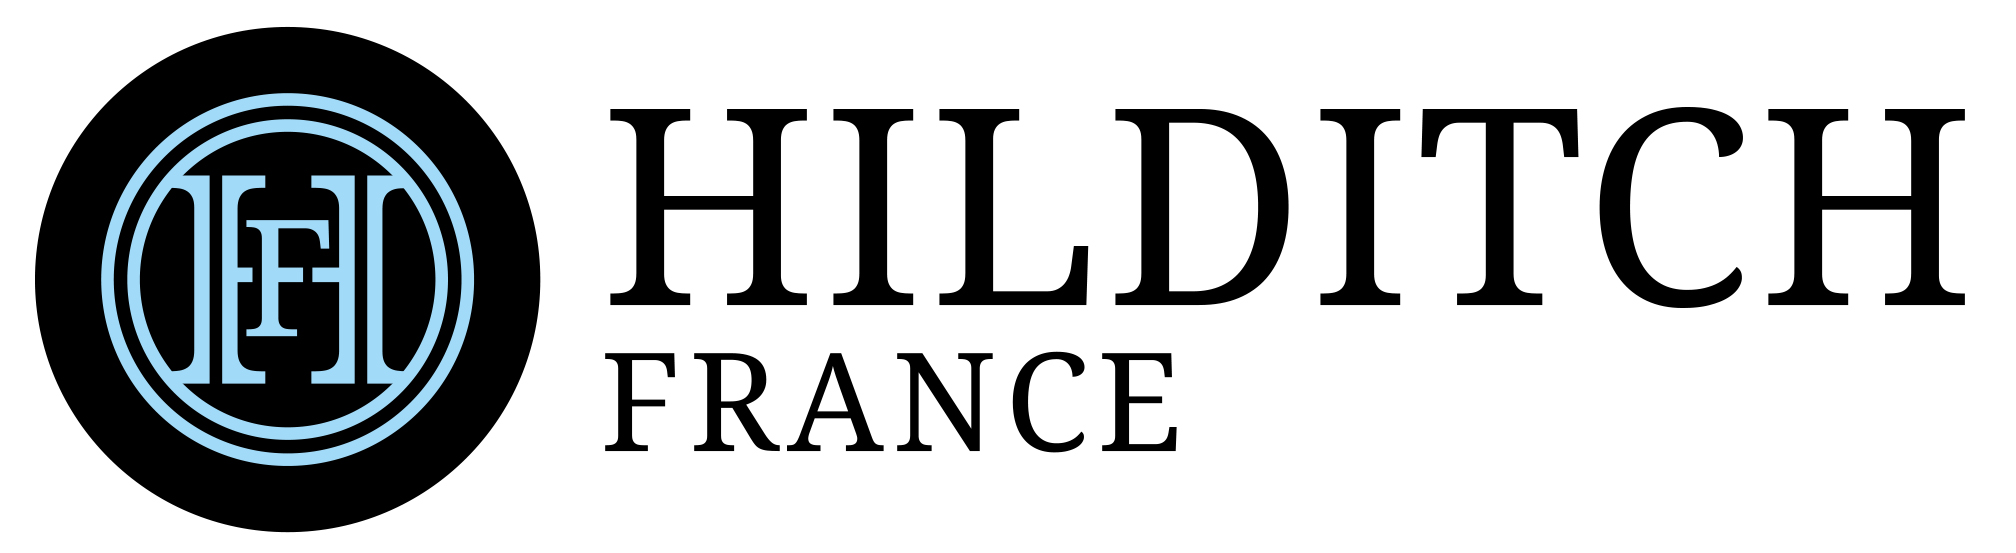 Hilditch%20France%20Logo%202019.jpg